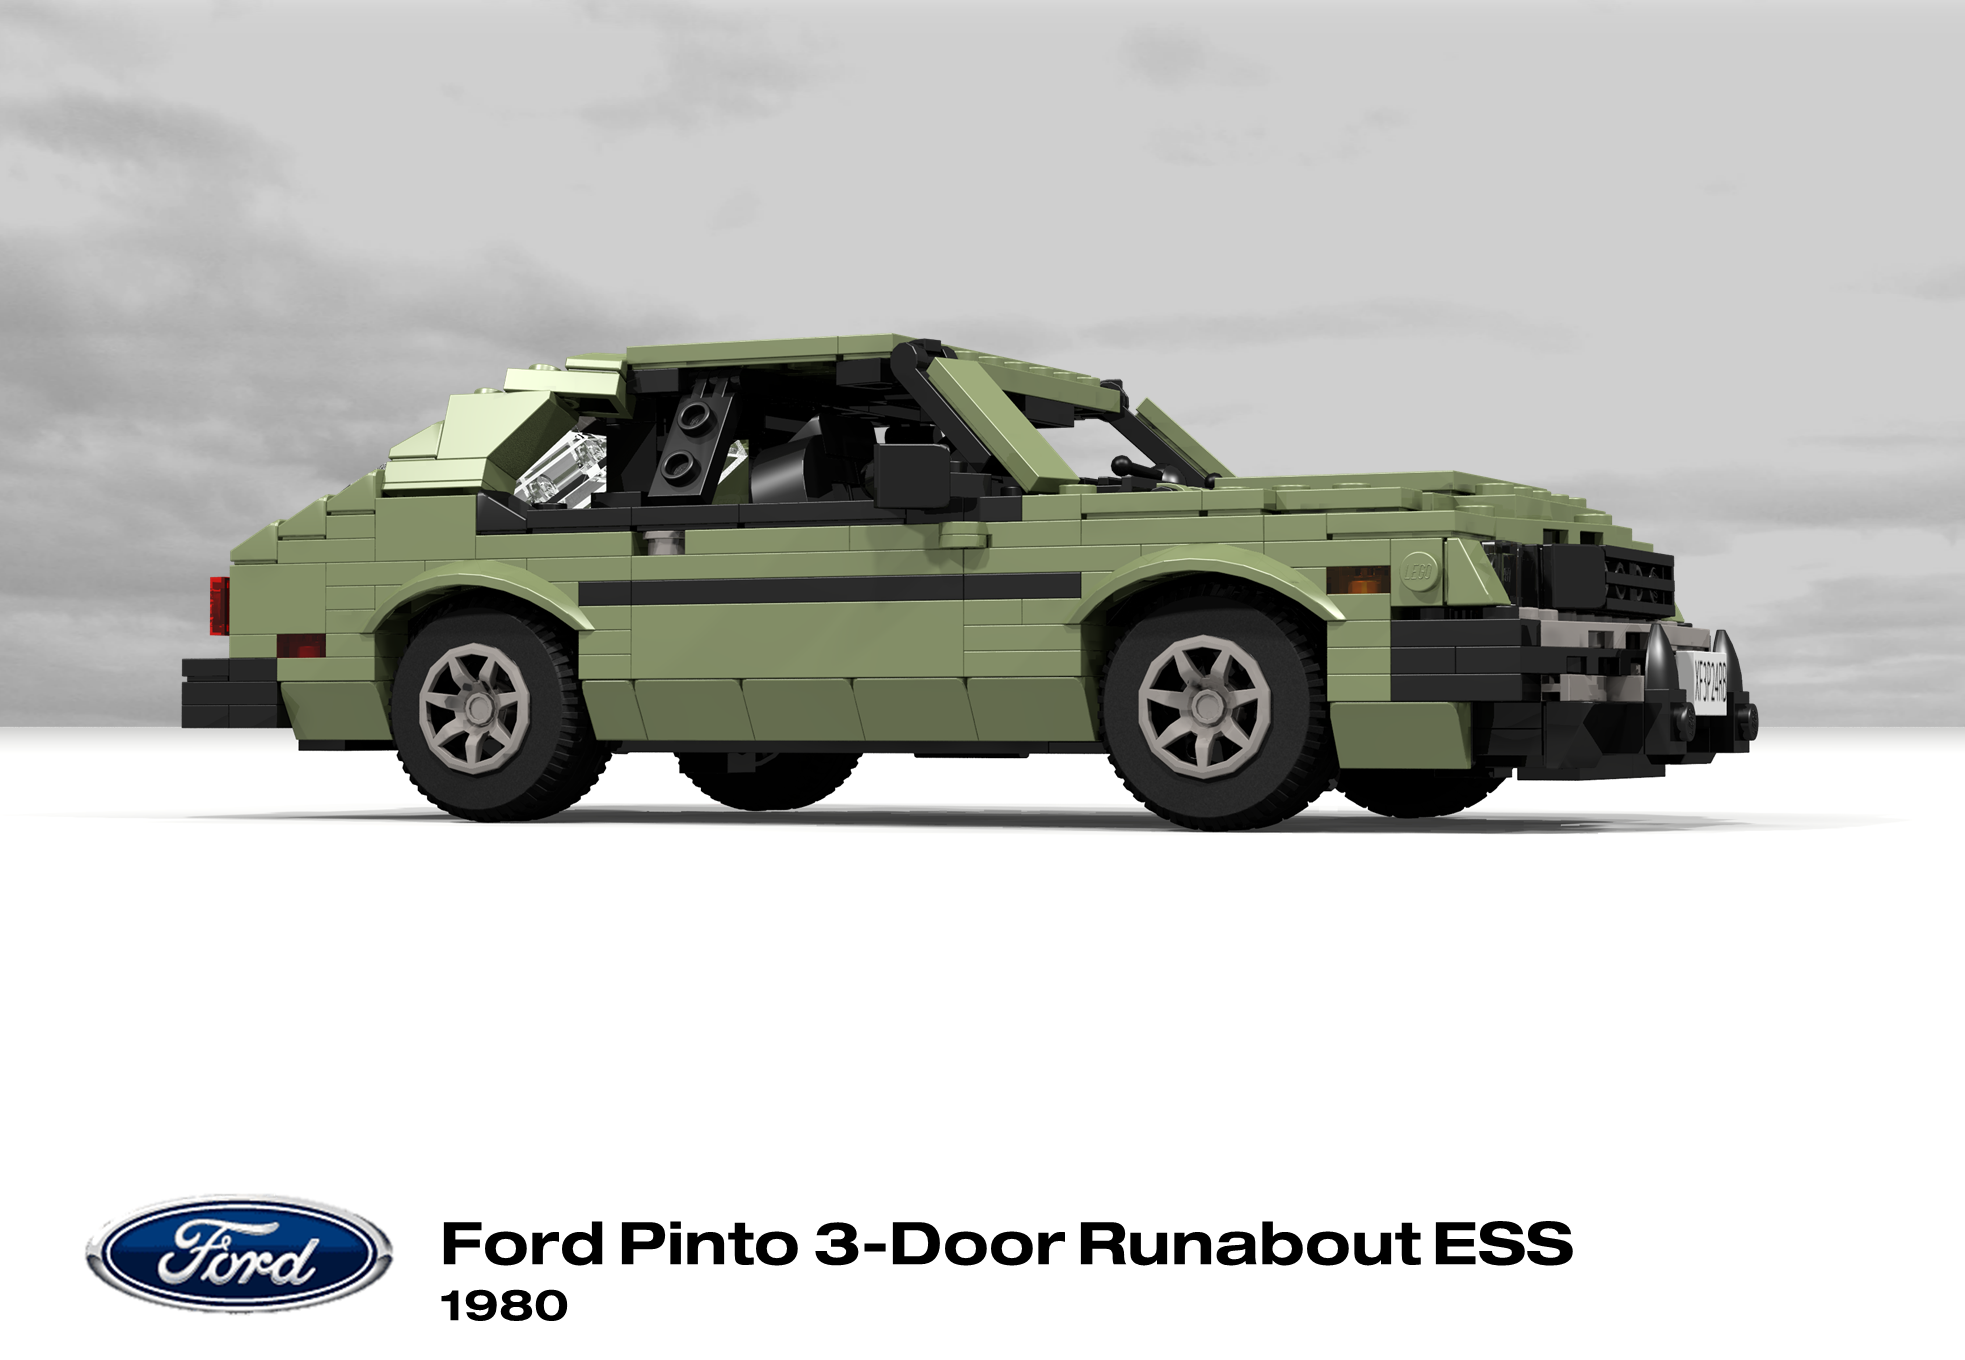 ford_pinto_runabout_ess_1980_02.png